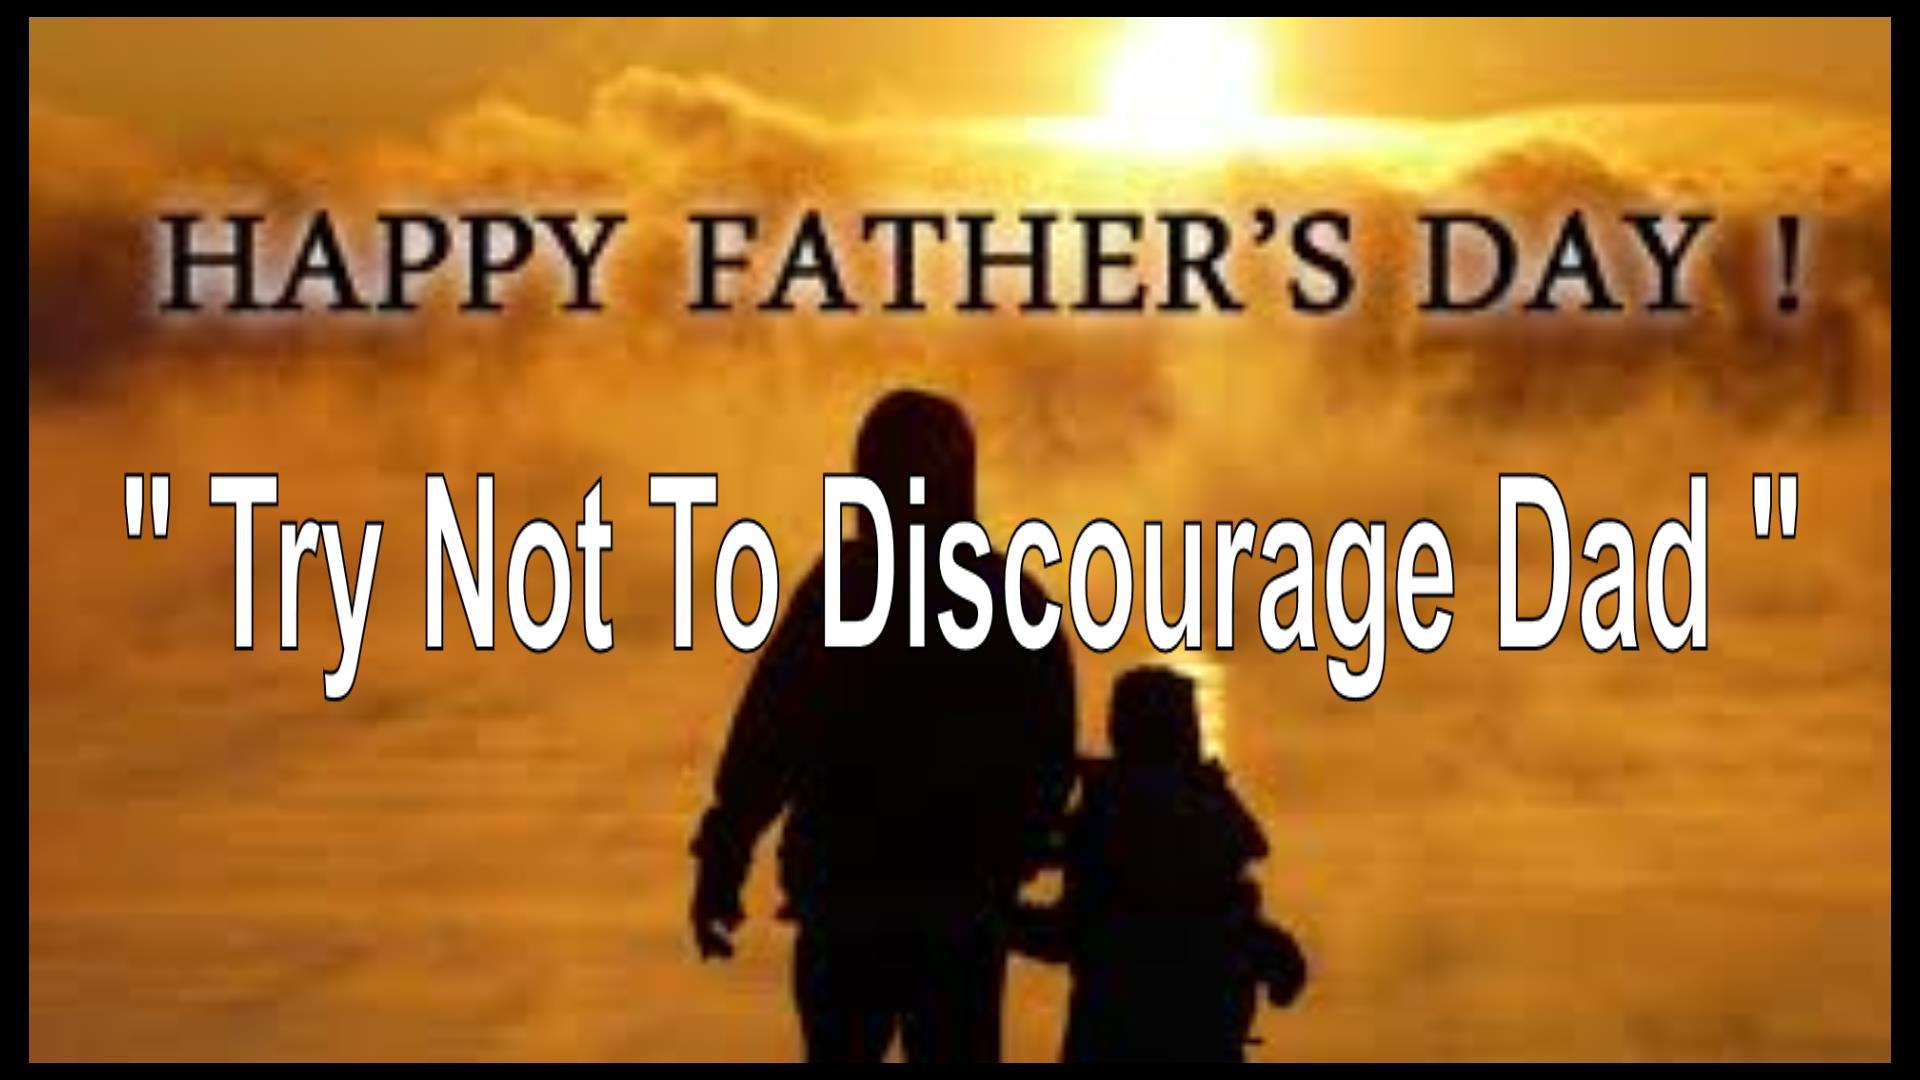 Try Not To Discourage Dad